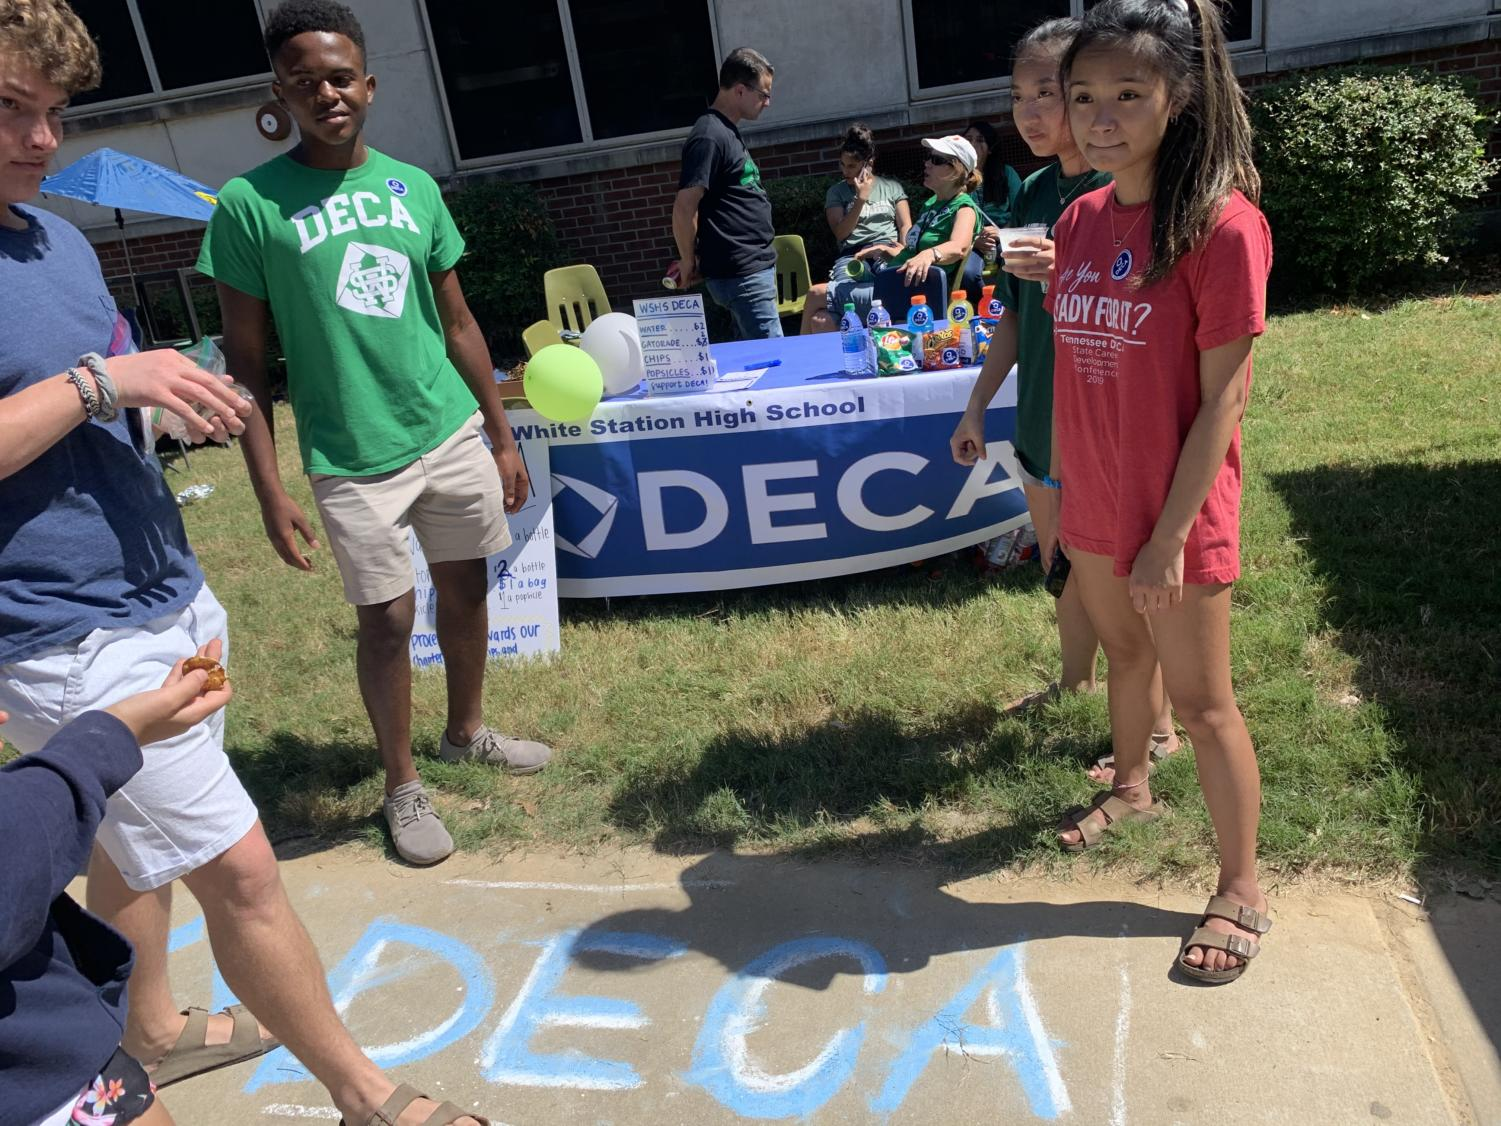 DECA represented themselves at the Fall Festival this year. They sold merchandise and refreshments to help fund their may competitions and trips throughout the year, as well as to just generally promote themselves.